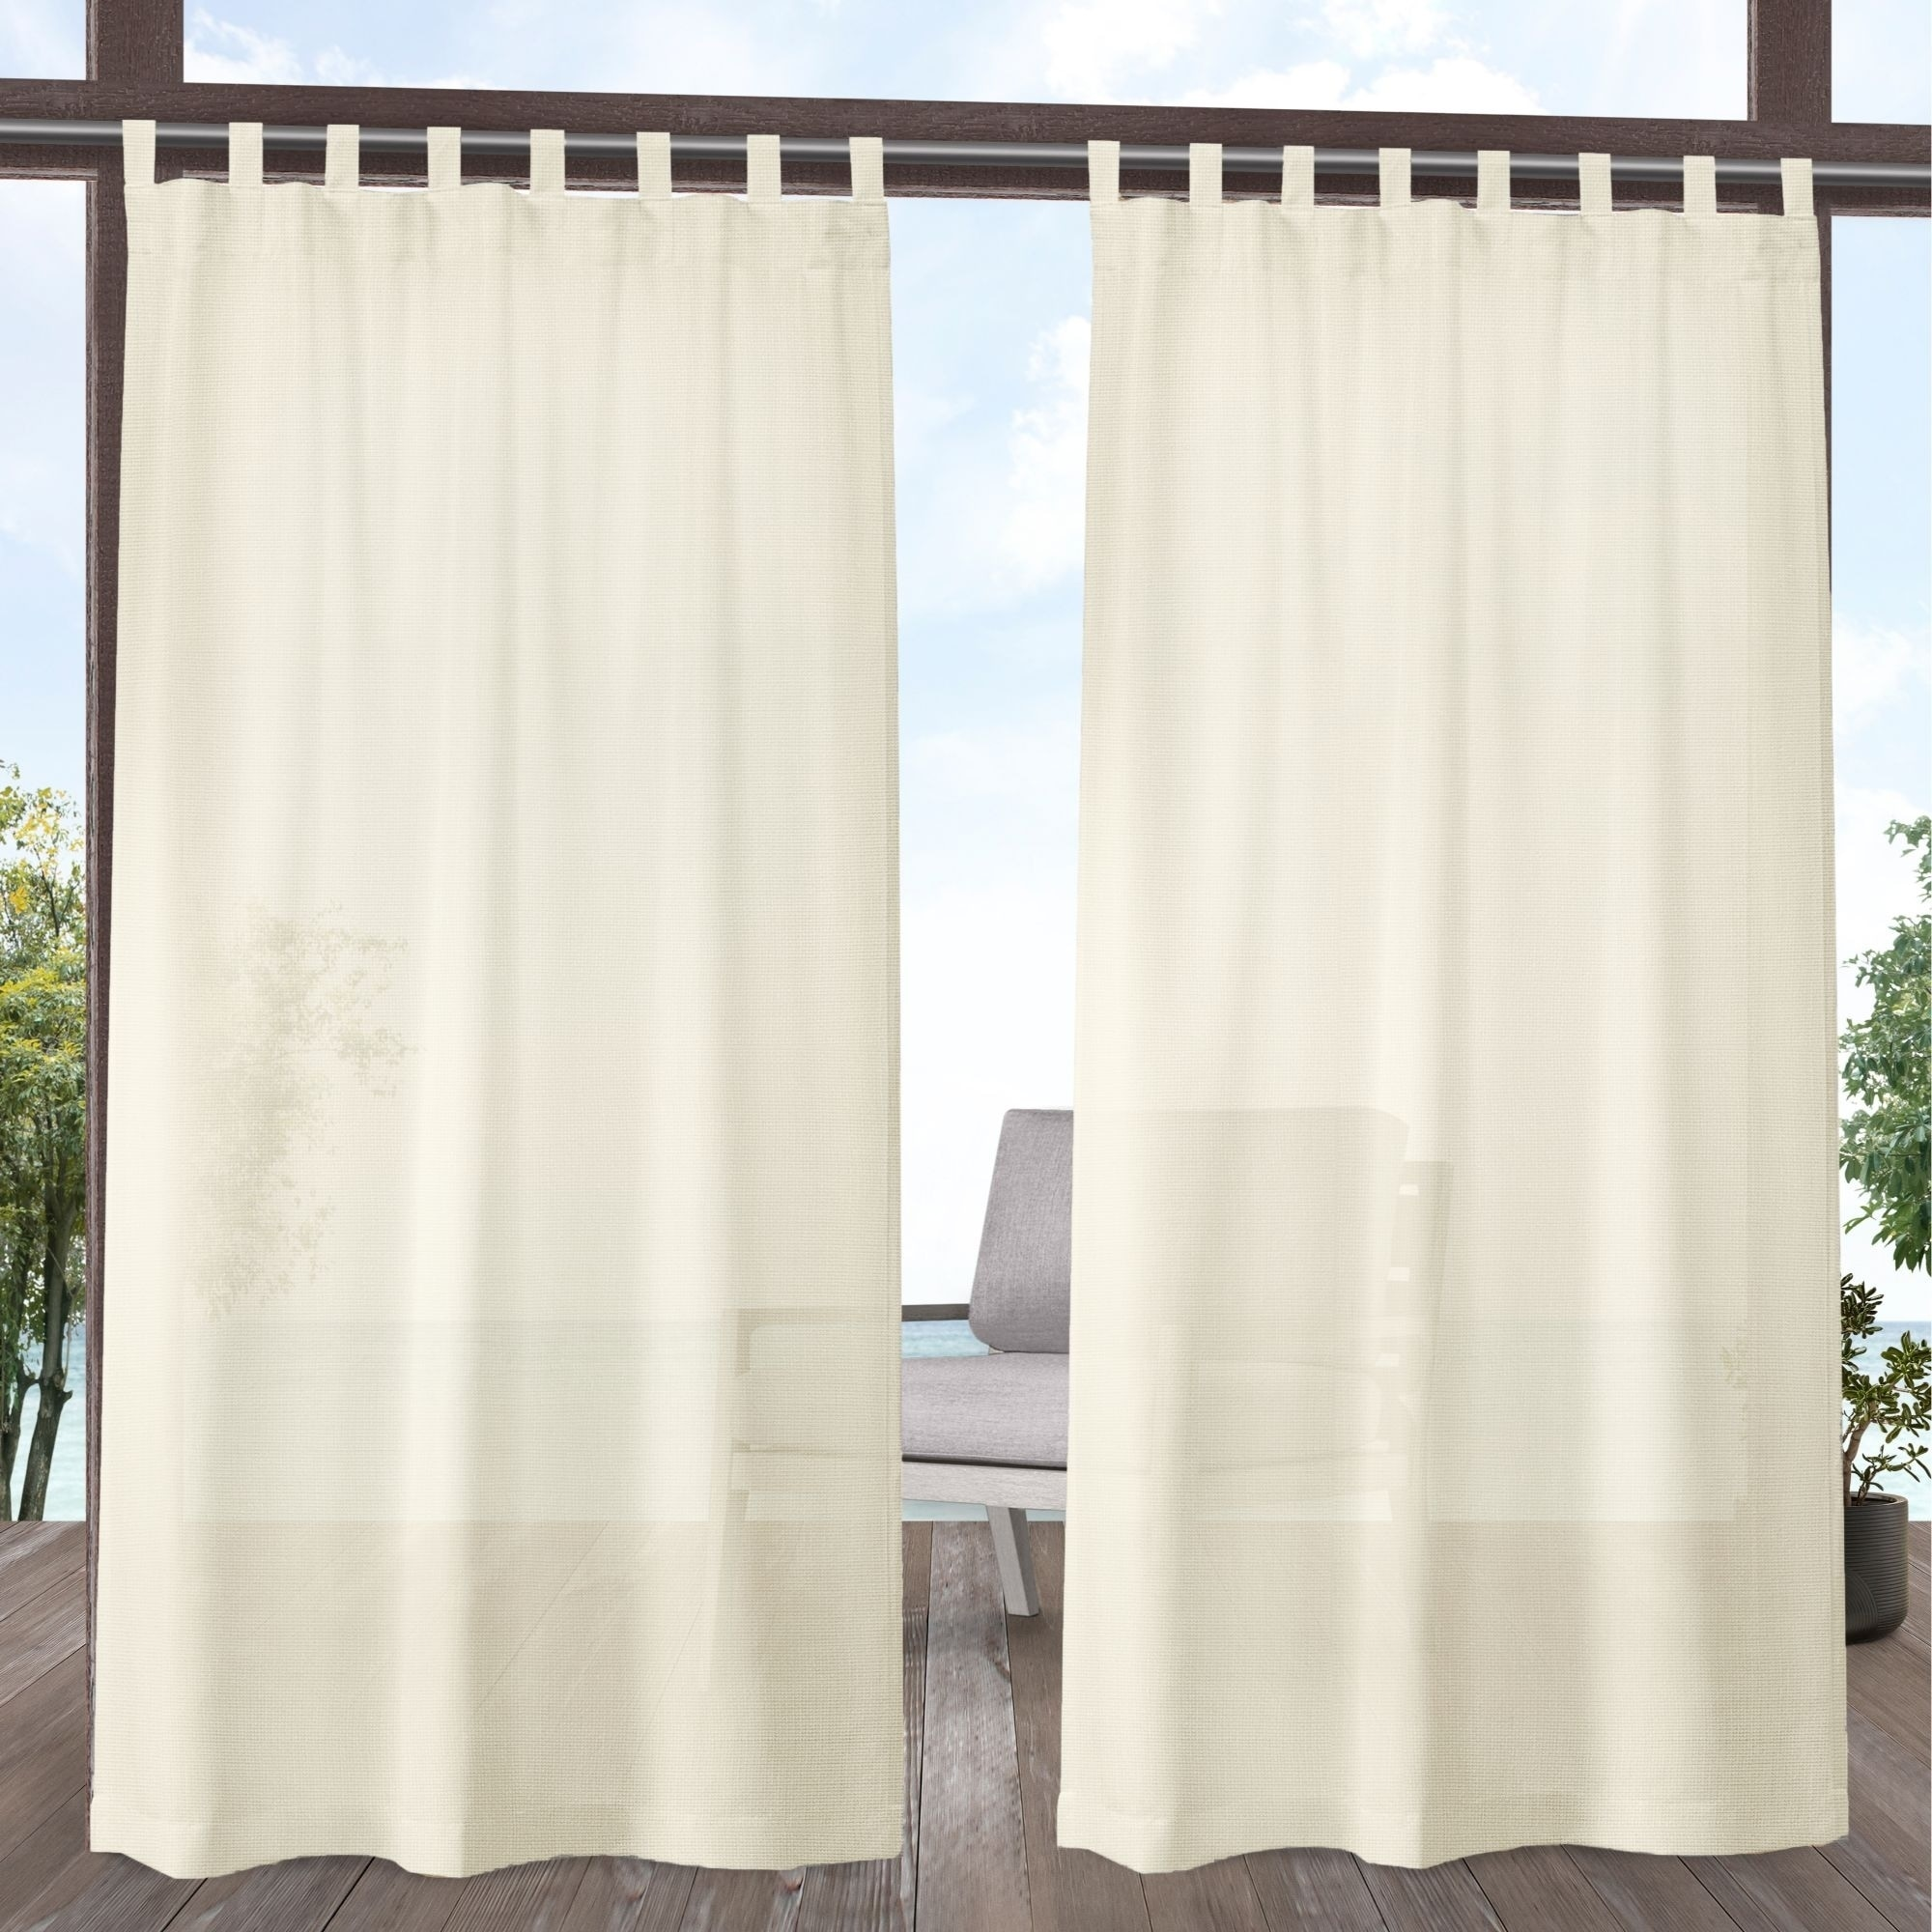 54 X 84 Outdoor Decor Escape Water Repellent Sheer Outdoor Curtain Ivory Patio Lawn Garden Outdoor Curtains